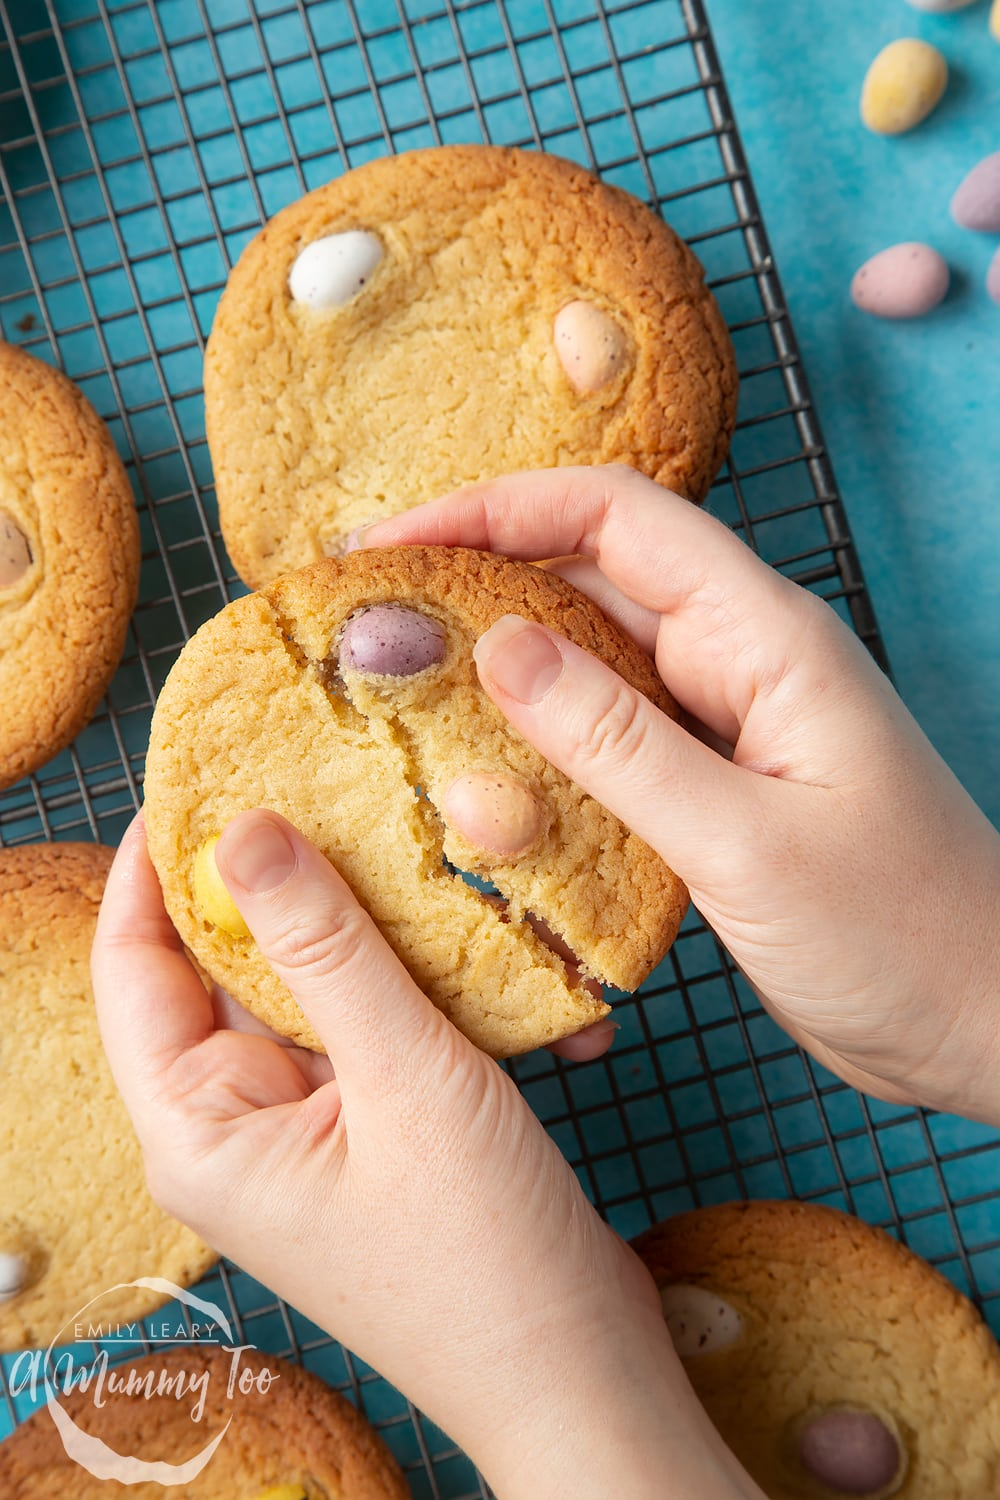 Overhead shot of a hand breaking open a Easter cookie with mini eggs with a mummy too logo in the lower-right corner